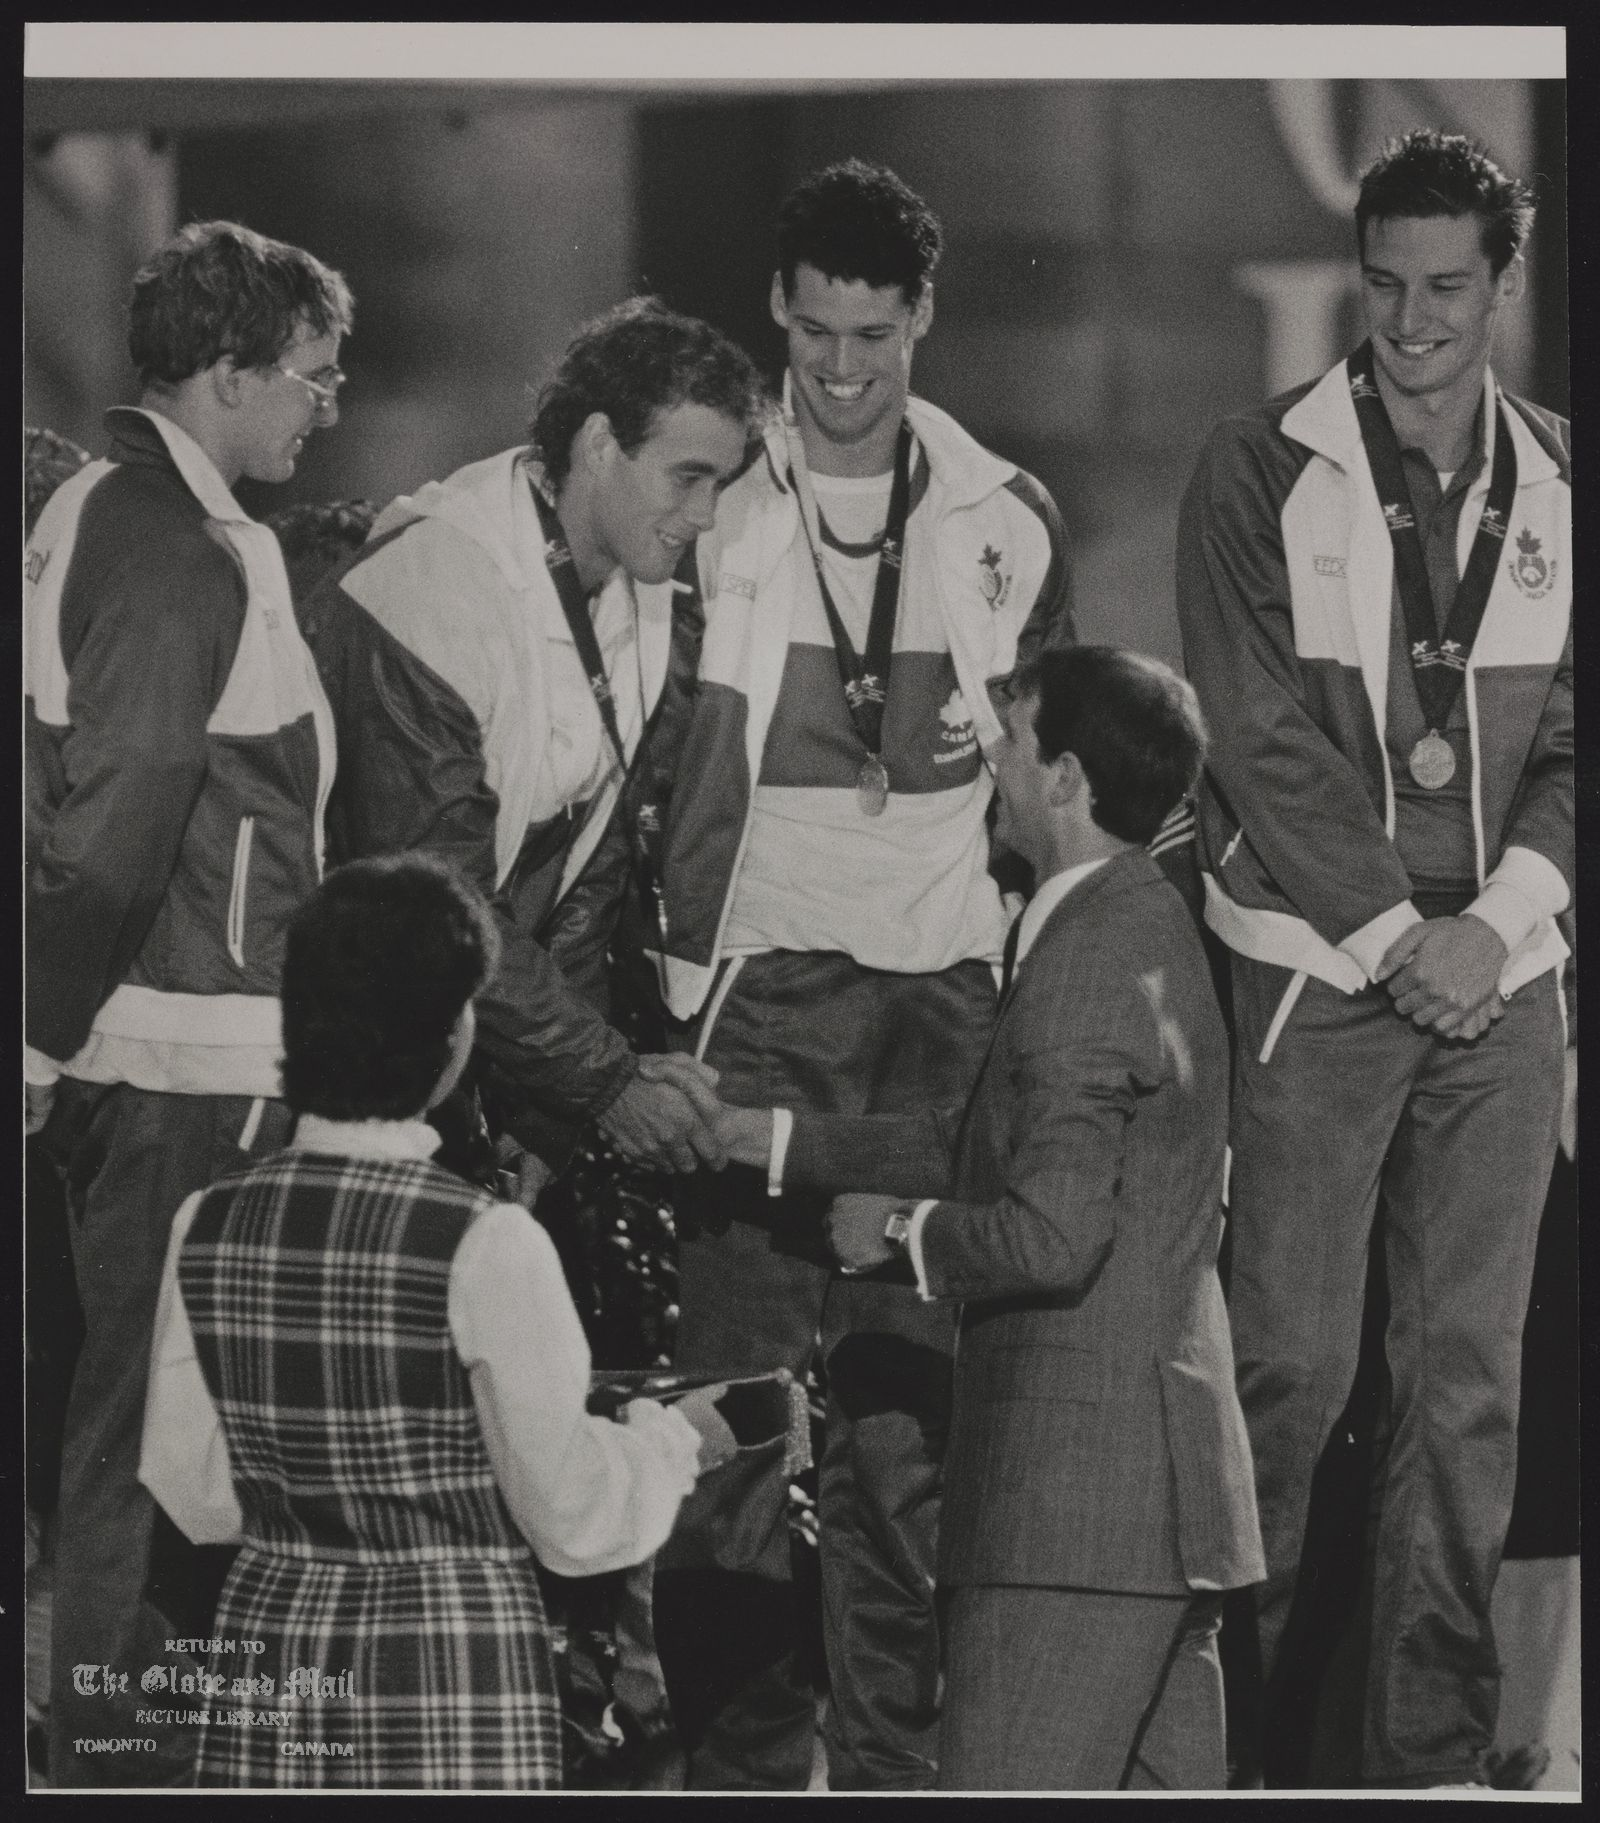 The notes transcribed from the back of this photograph are as follows: COMMONWEALTH GAMES EDINBURGH (1986) SPECIAL FOR THE GLOBE AND MAIL, CANADA EDI11: EDINBURGH, SCOTLAND, JULY 30-Prince Edward presents Victor Davis with a gold medal as the rest of the Canadian 4x100m Medley team look on. From (L-R) Tom Ponting Victor Davis, Mark Tewksbury and Alex Baumann. REUTER hd/Hans Deryk